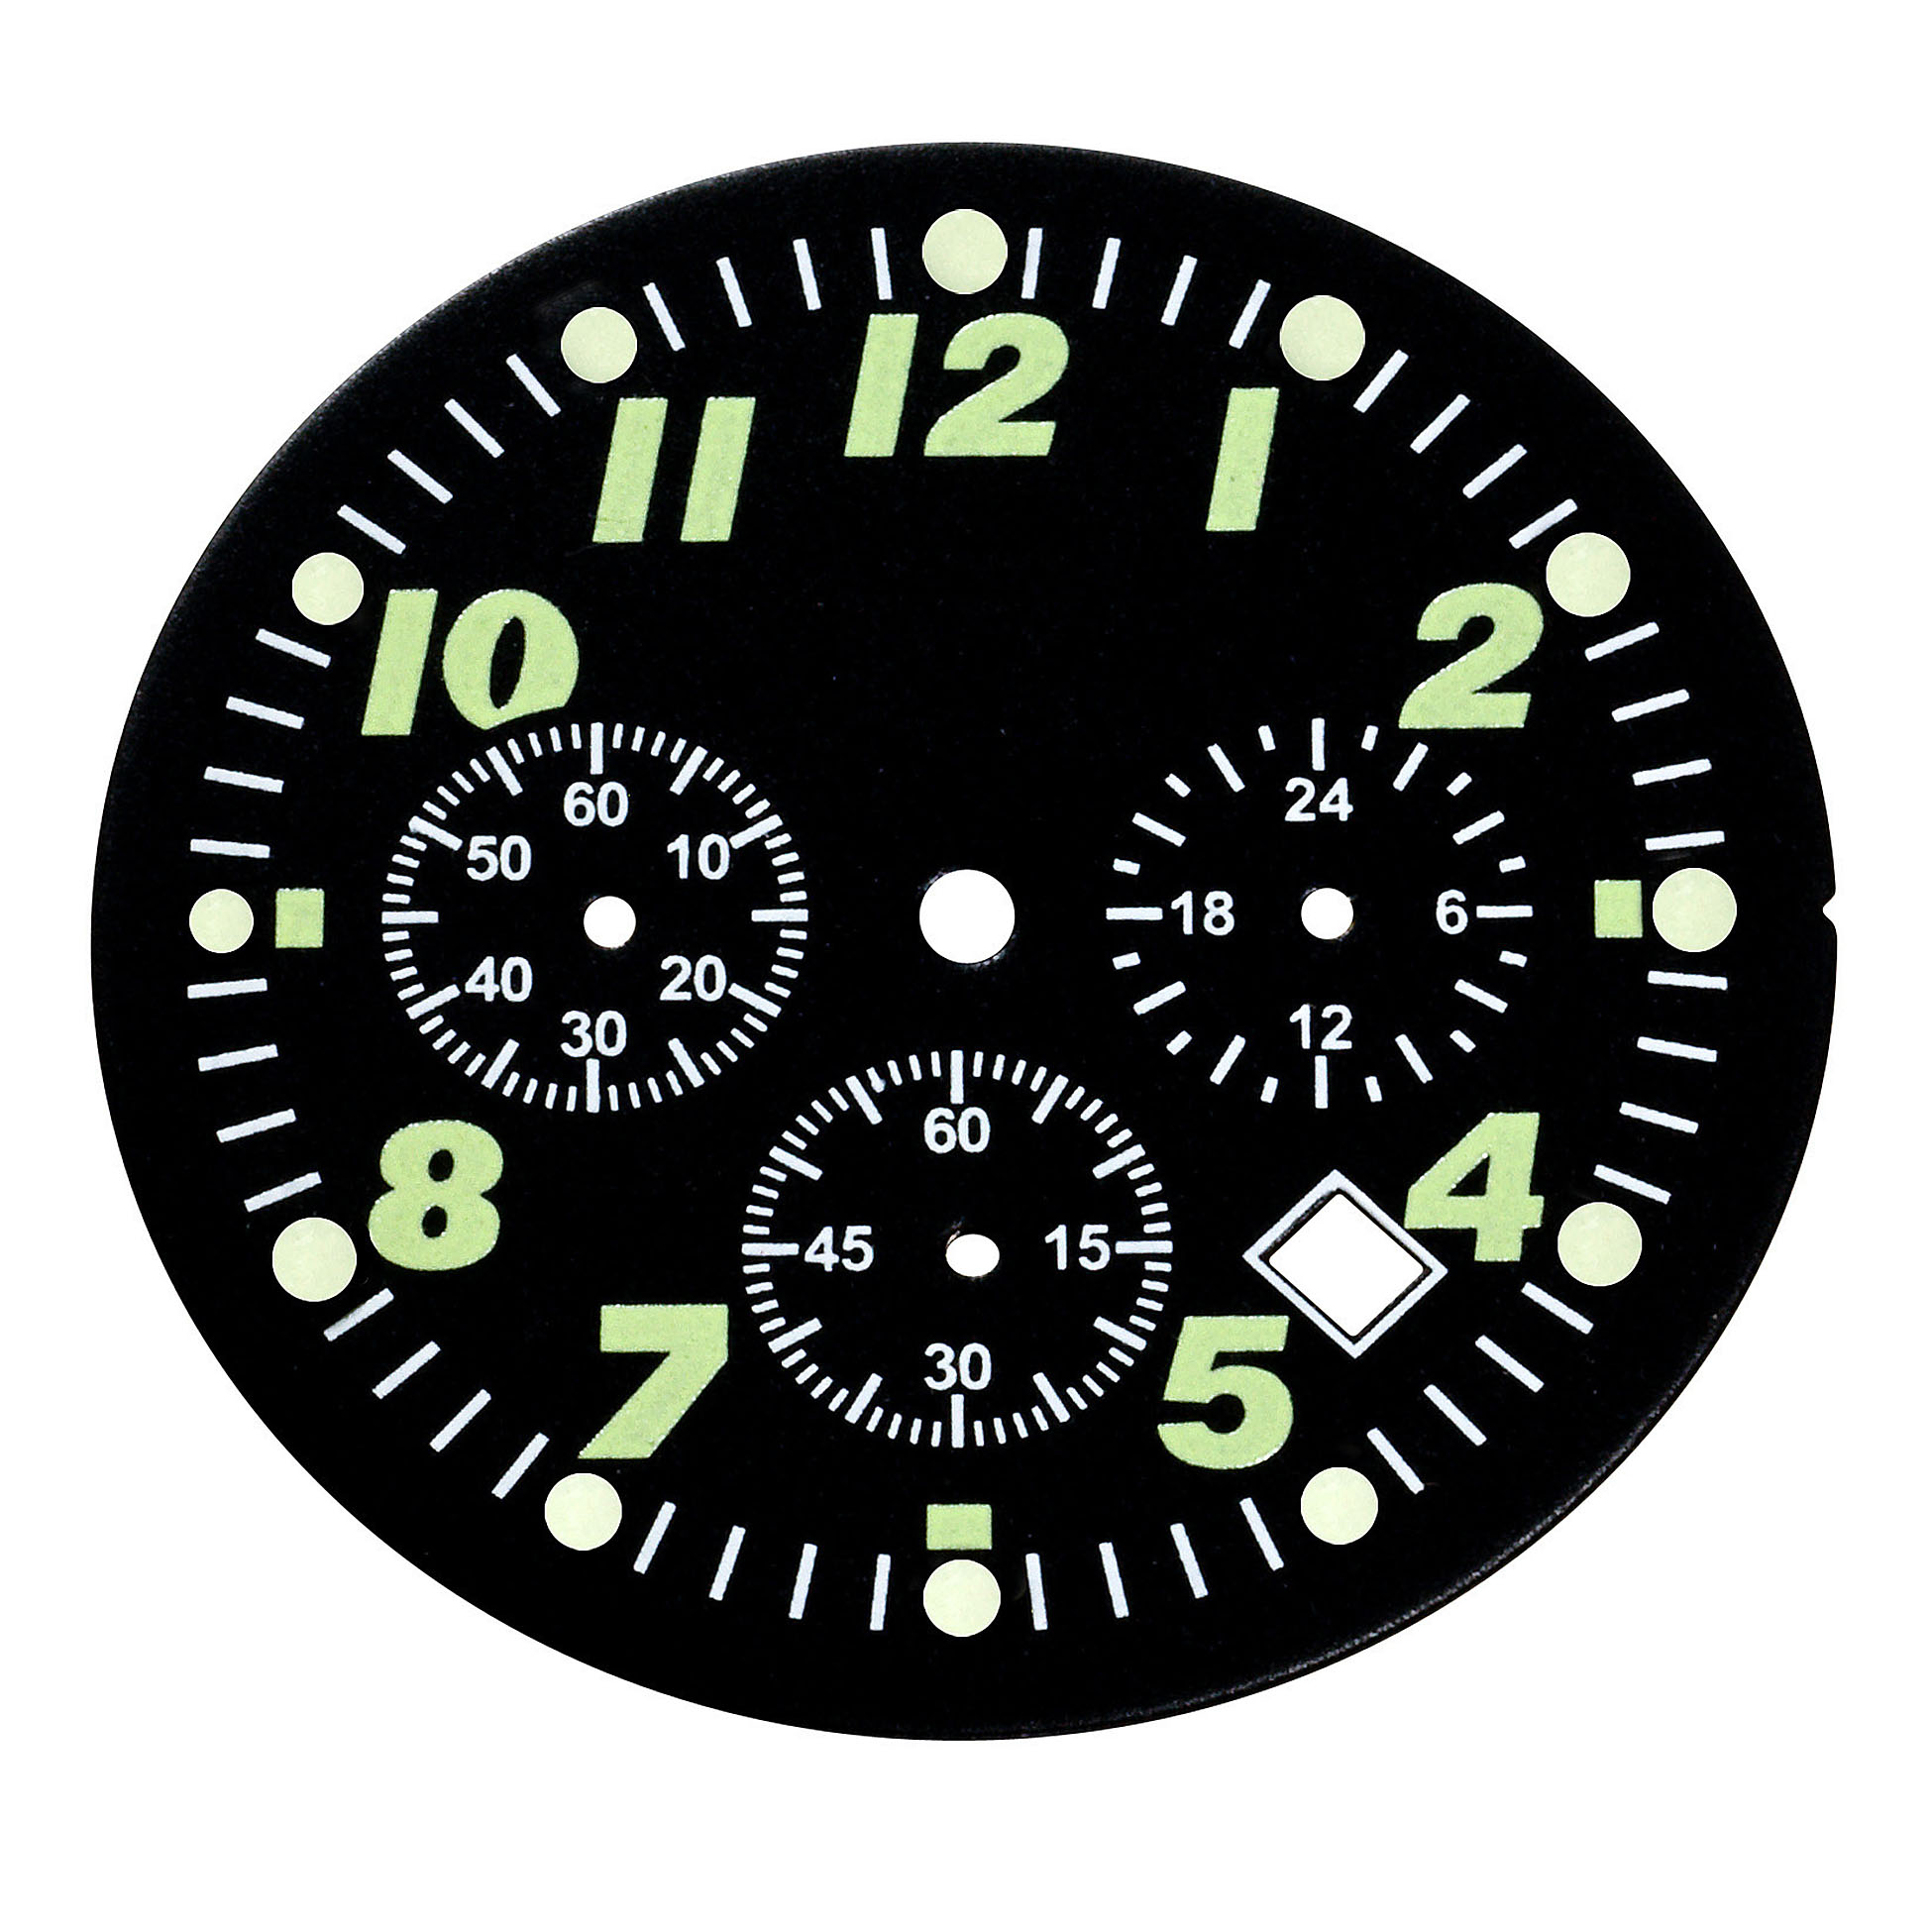 Luminous Index on Dial